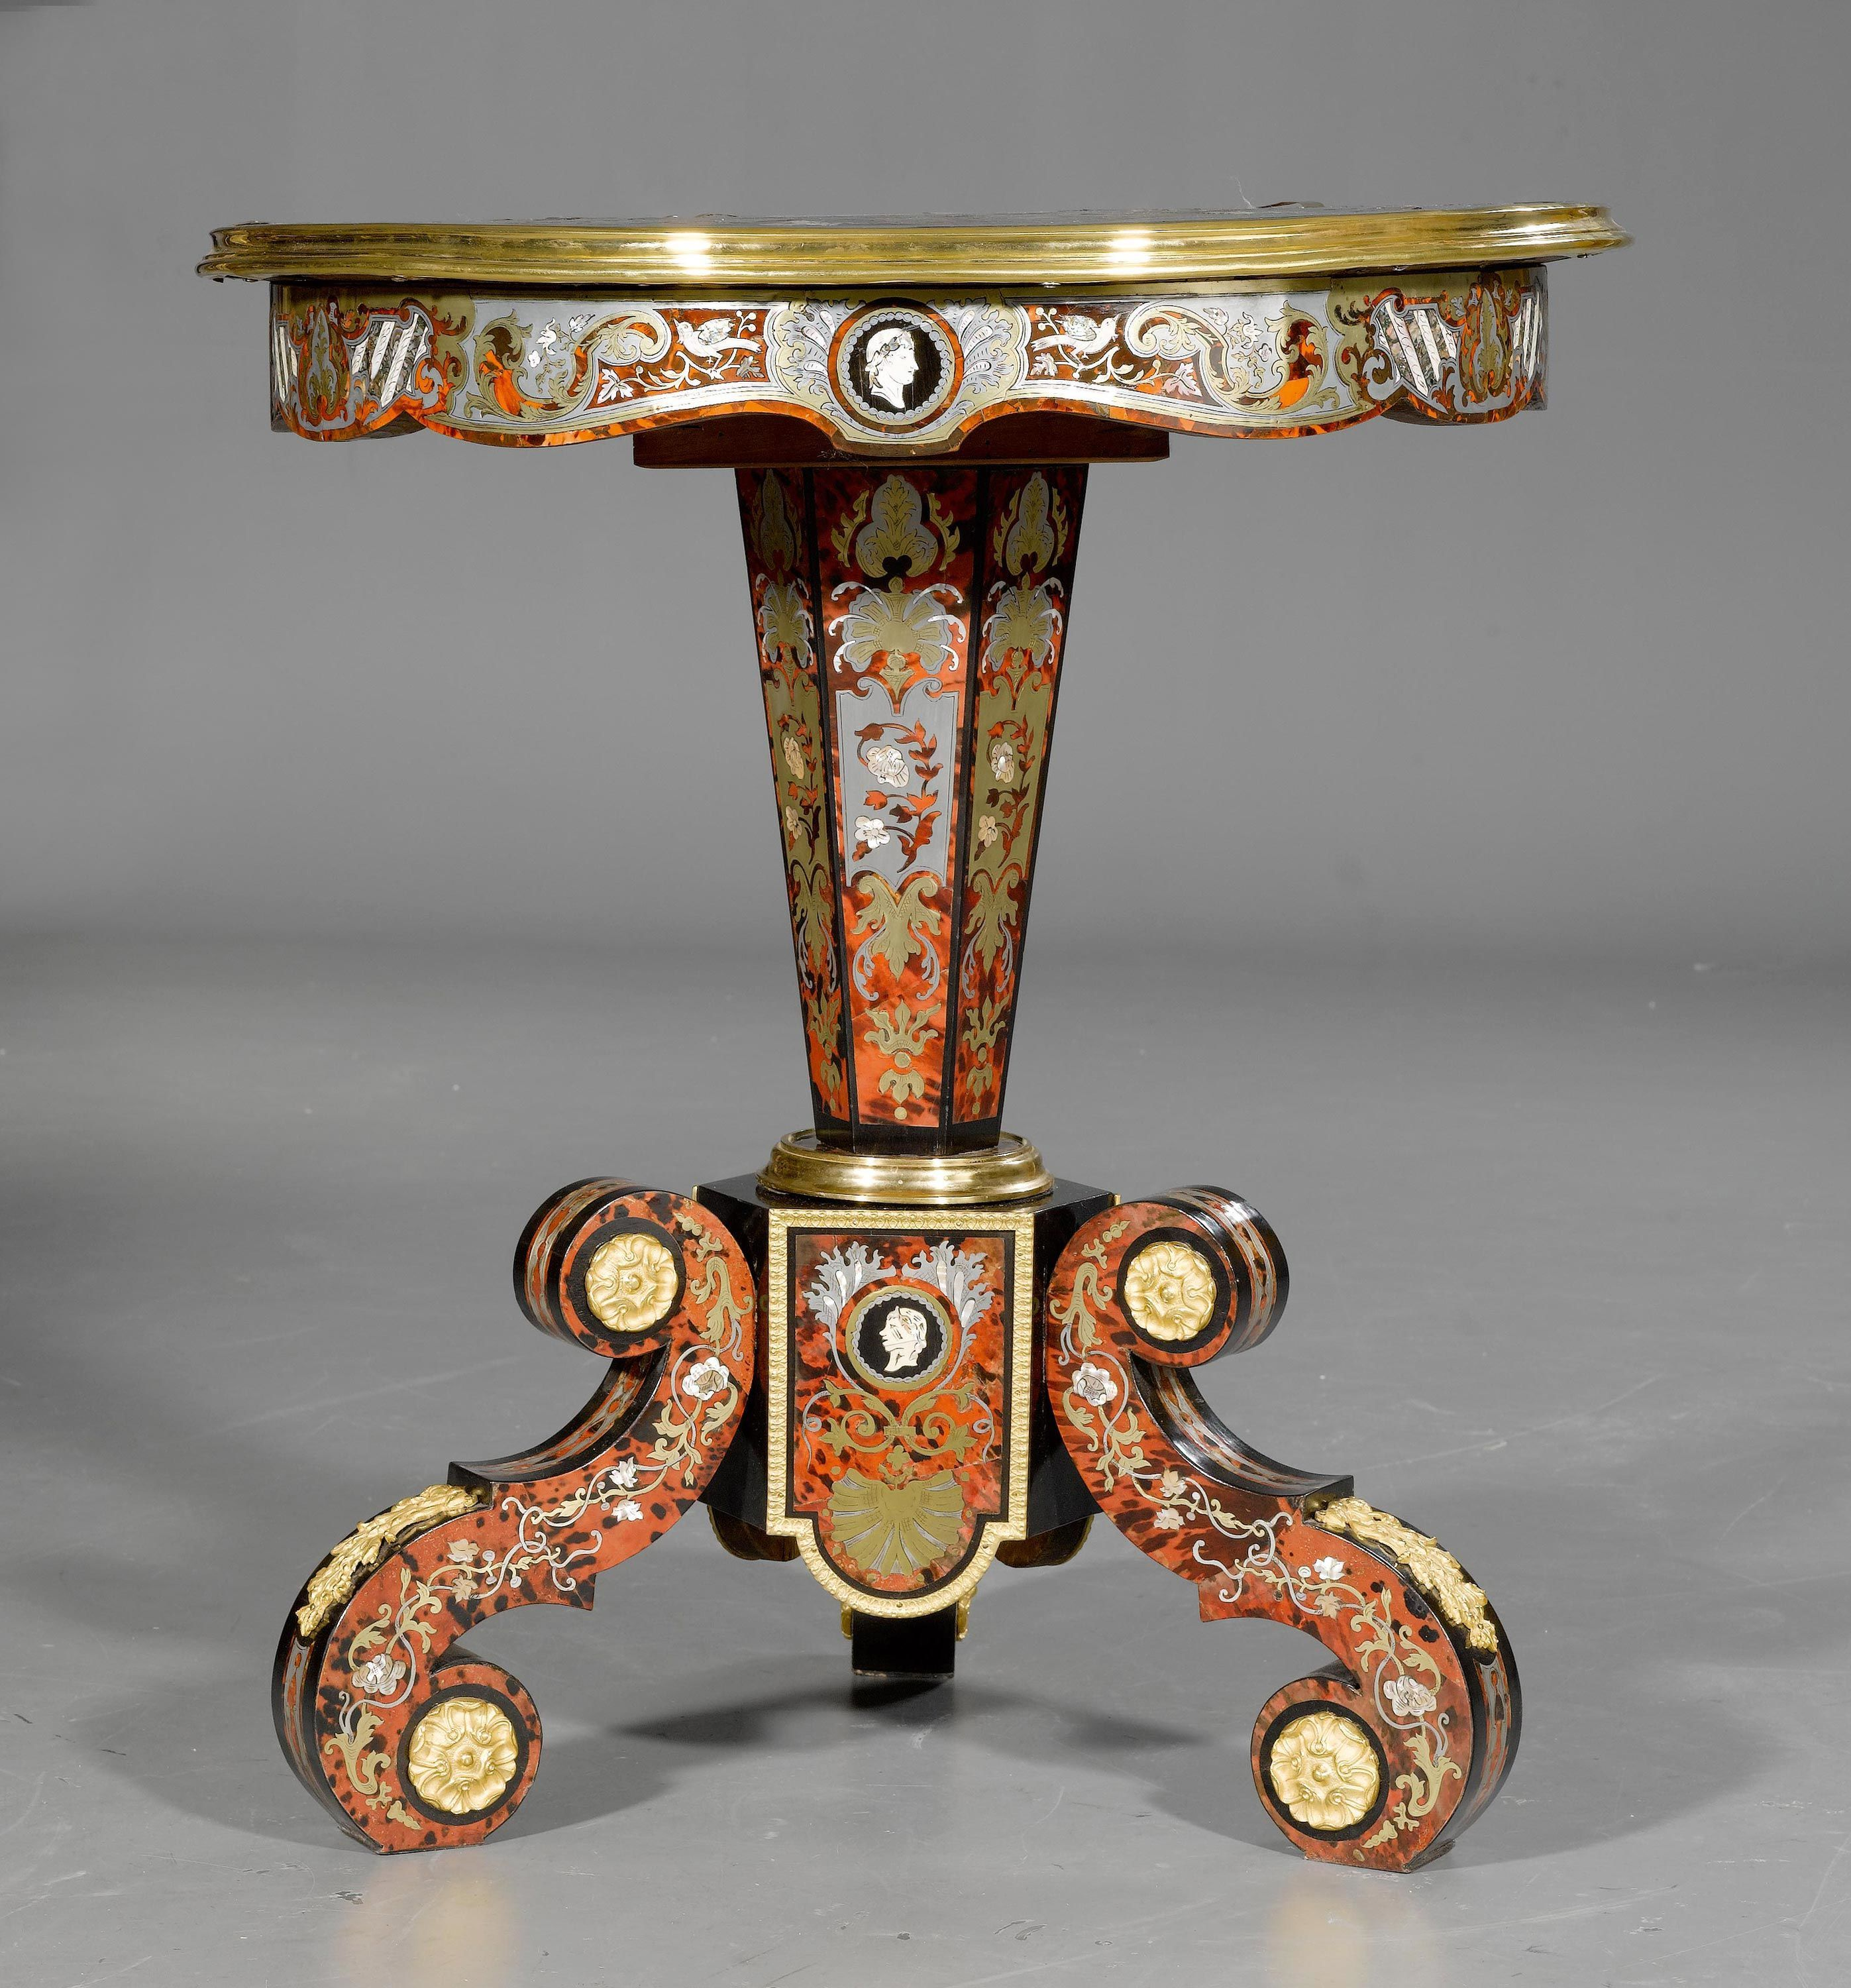 C1870 ROUND GUERIDON WITH BOULLE MARQUETRY, Napoléon III